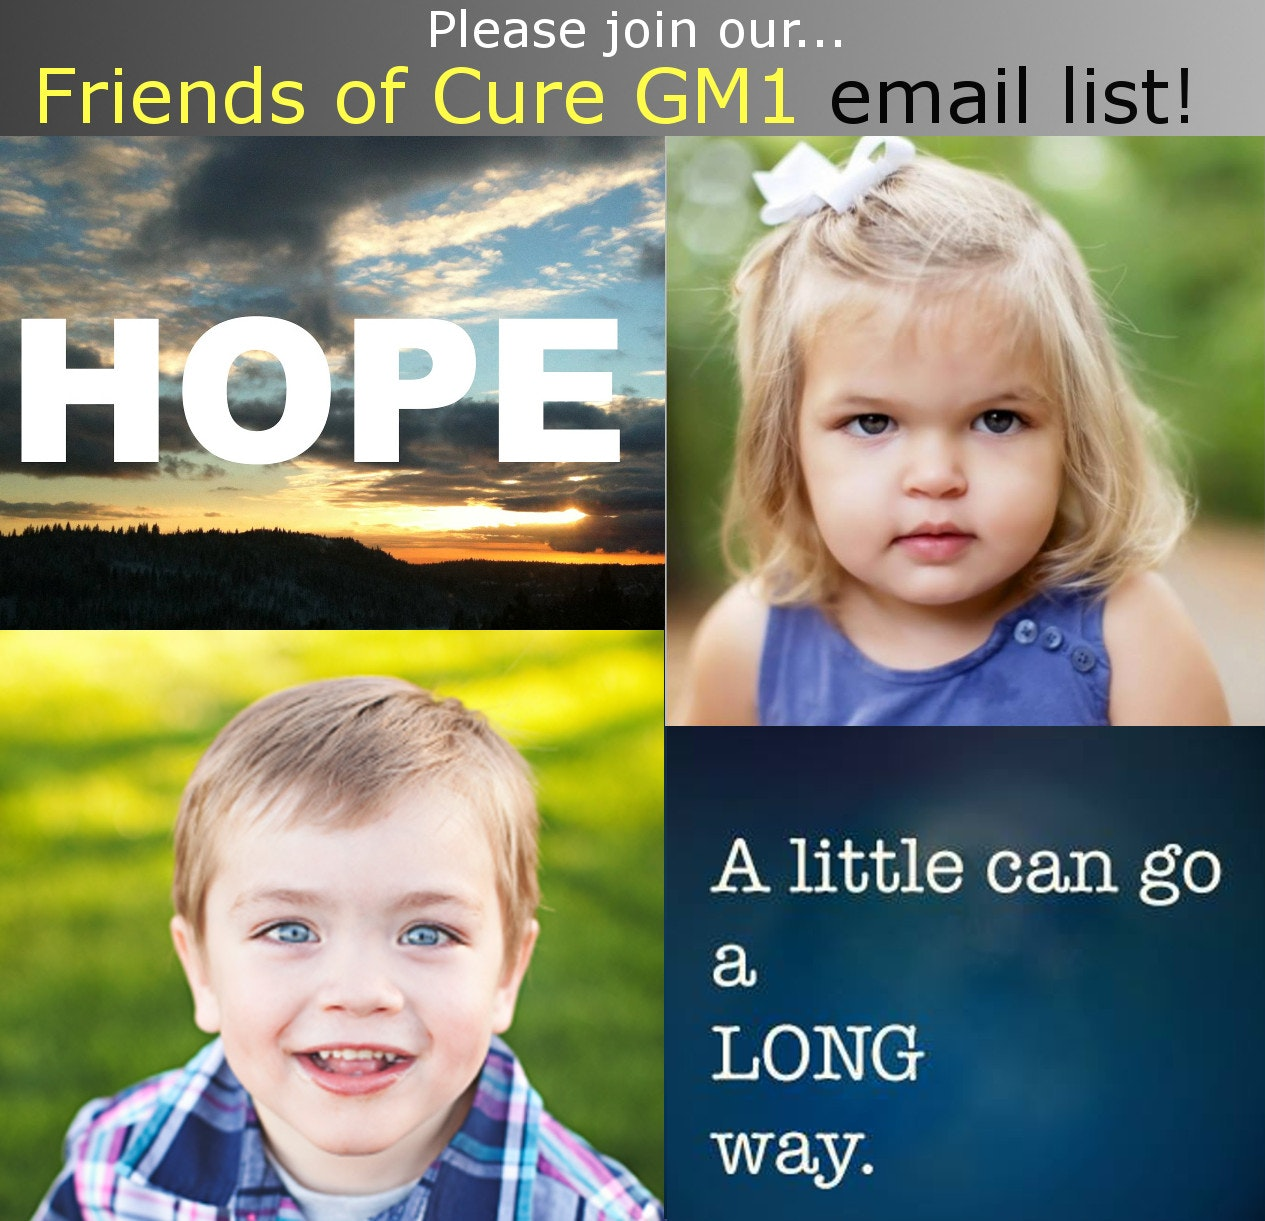 Cure GM1